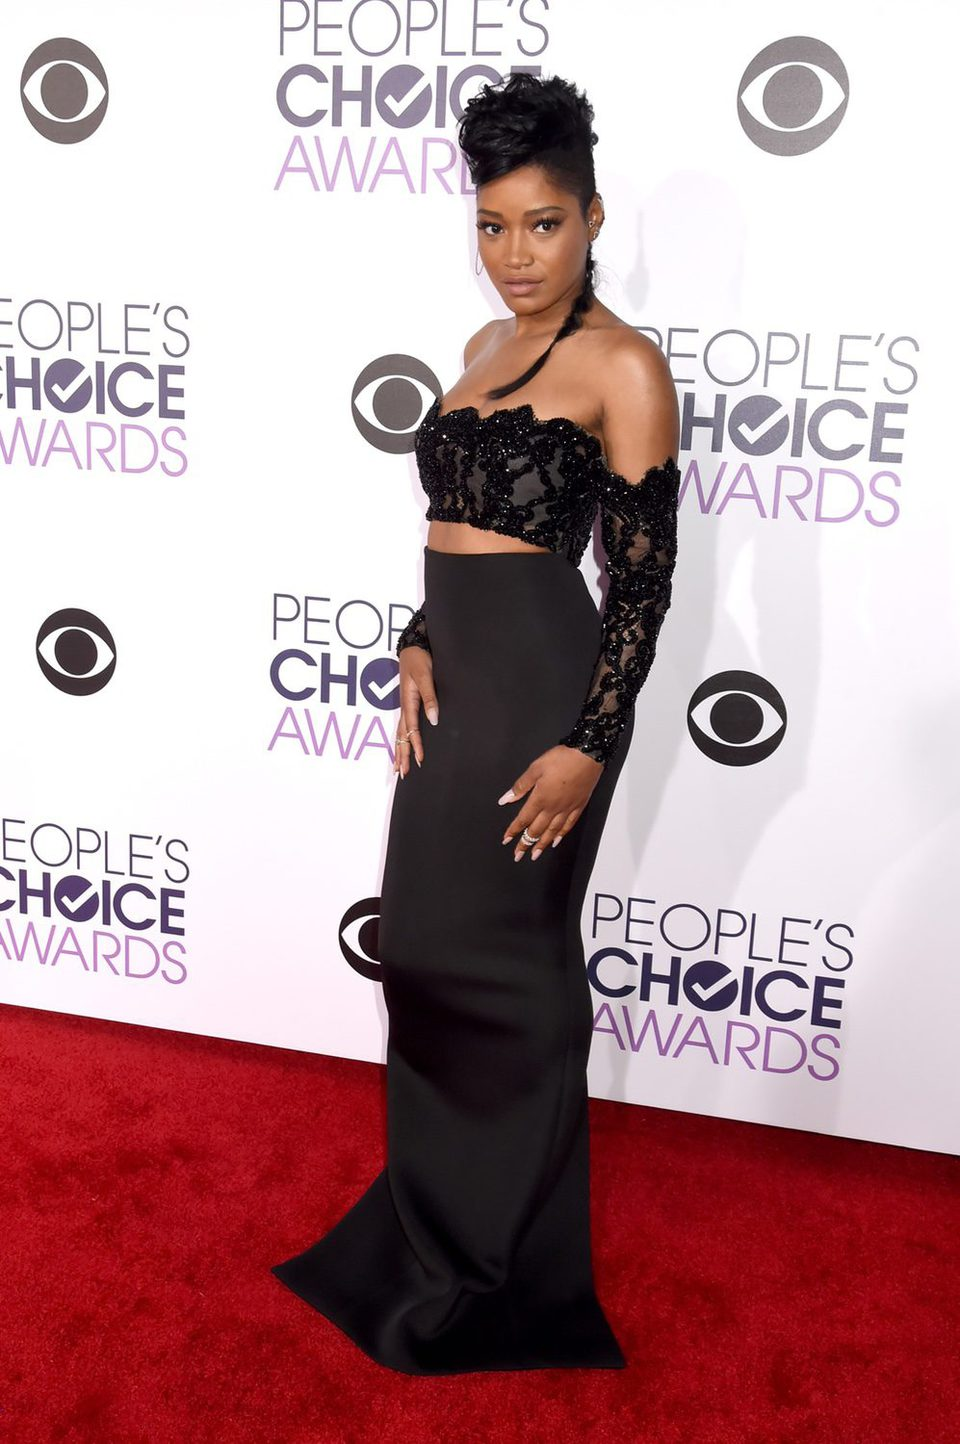 Keke Palmer during the People's Choice Awards 2016 ...